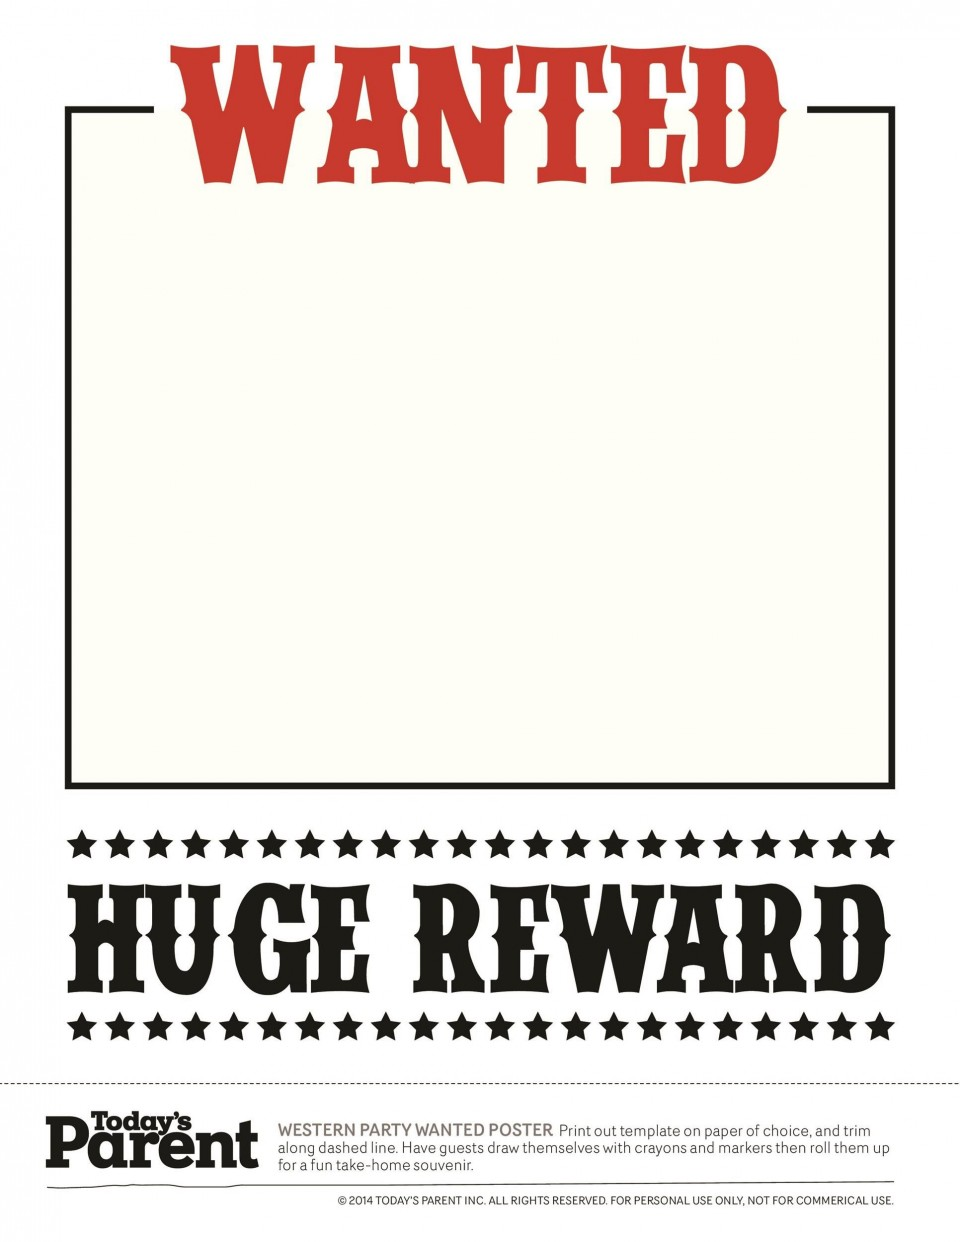 003 Wonderful Wanted Poster Template Microsoft Word Image  Western Most960